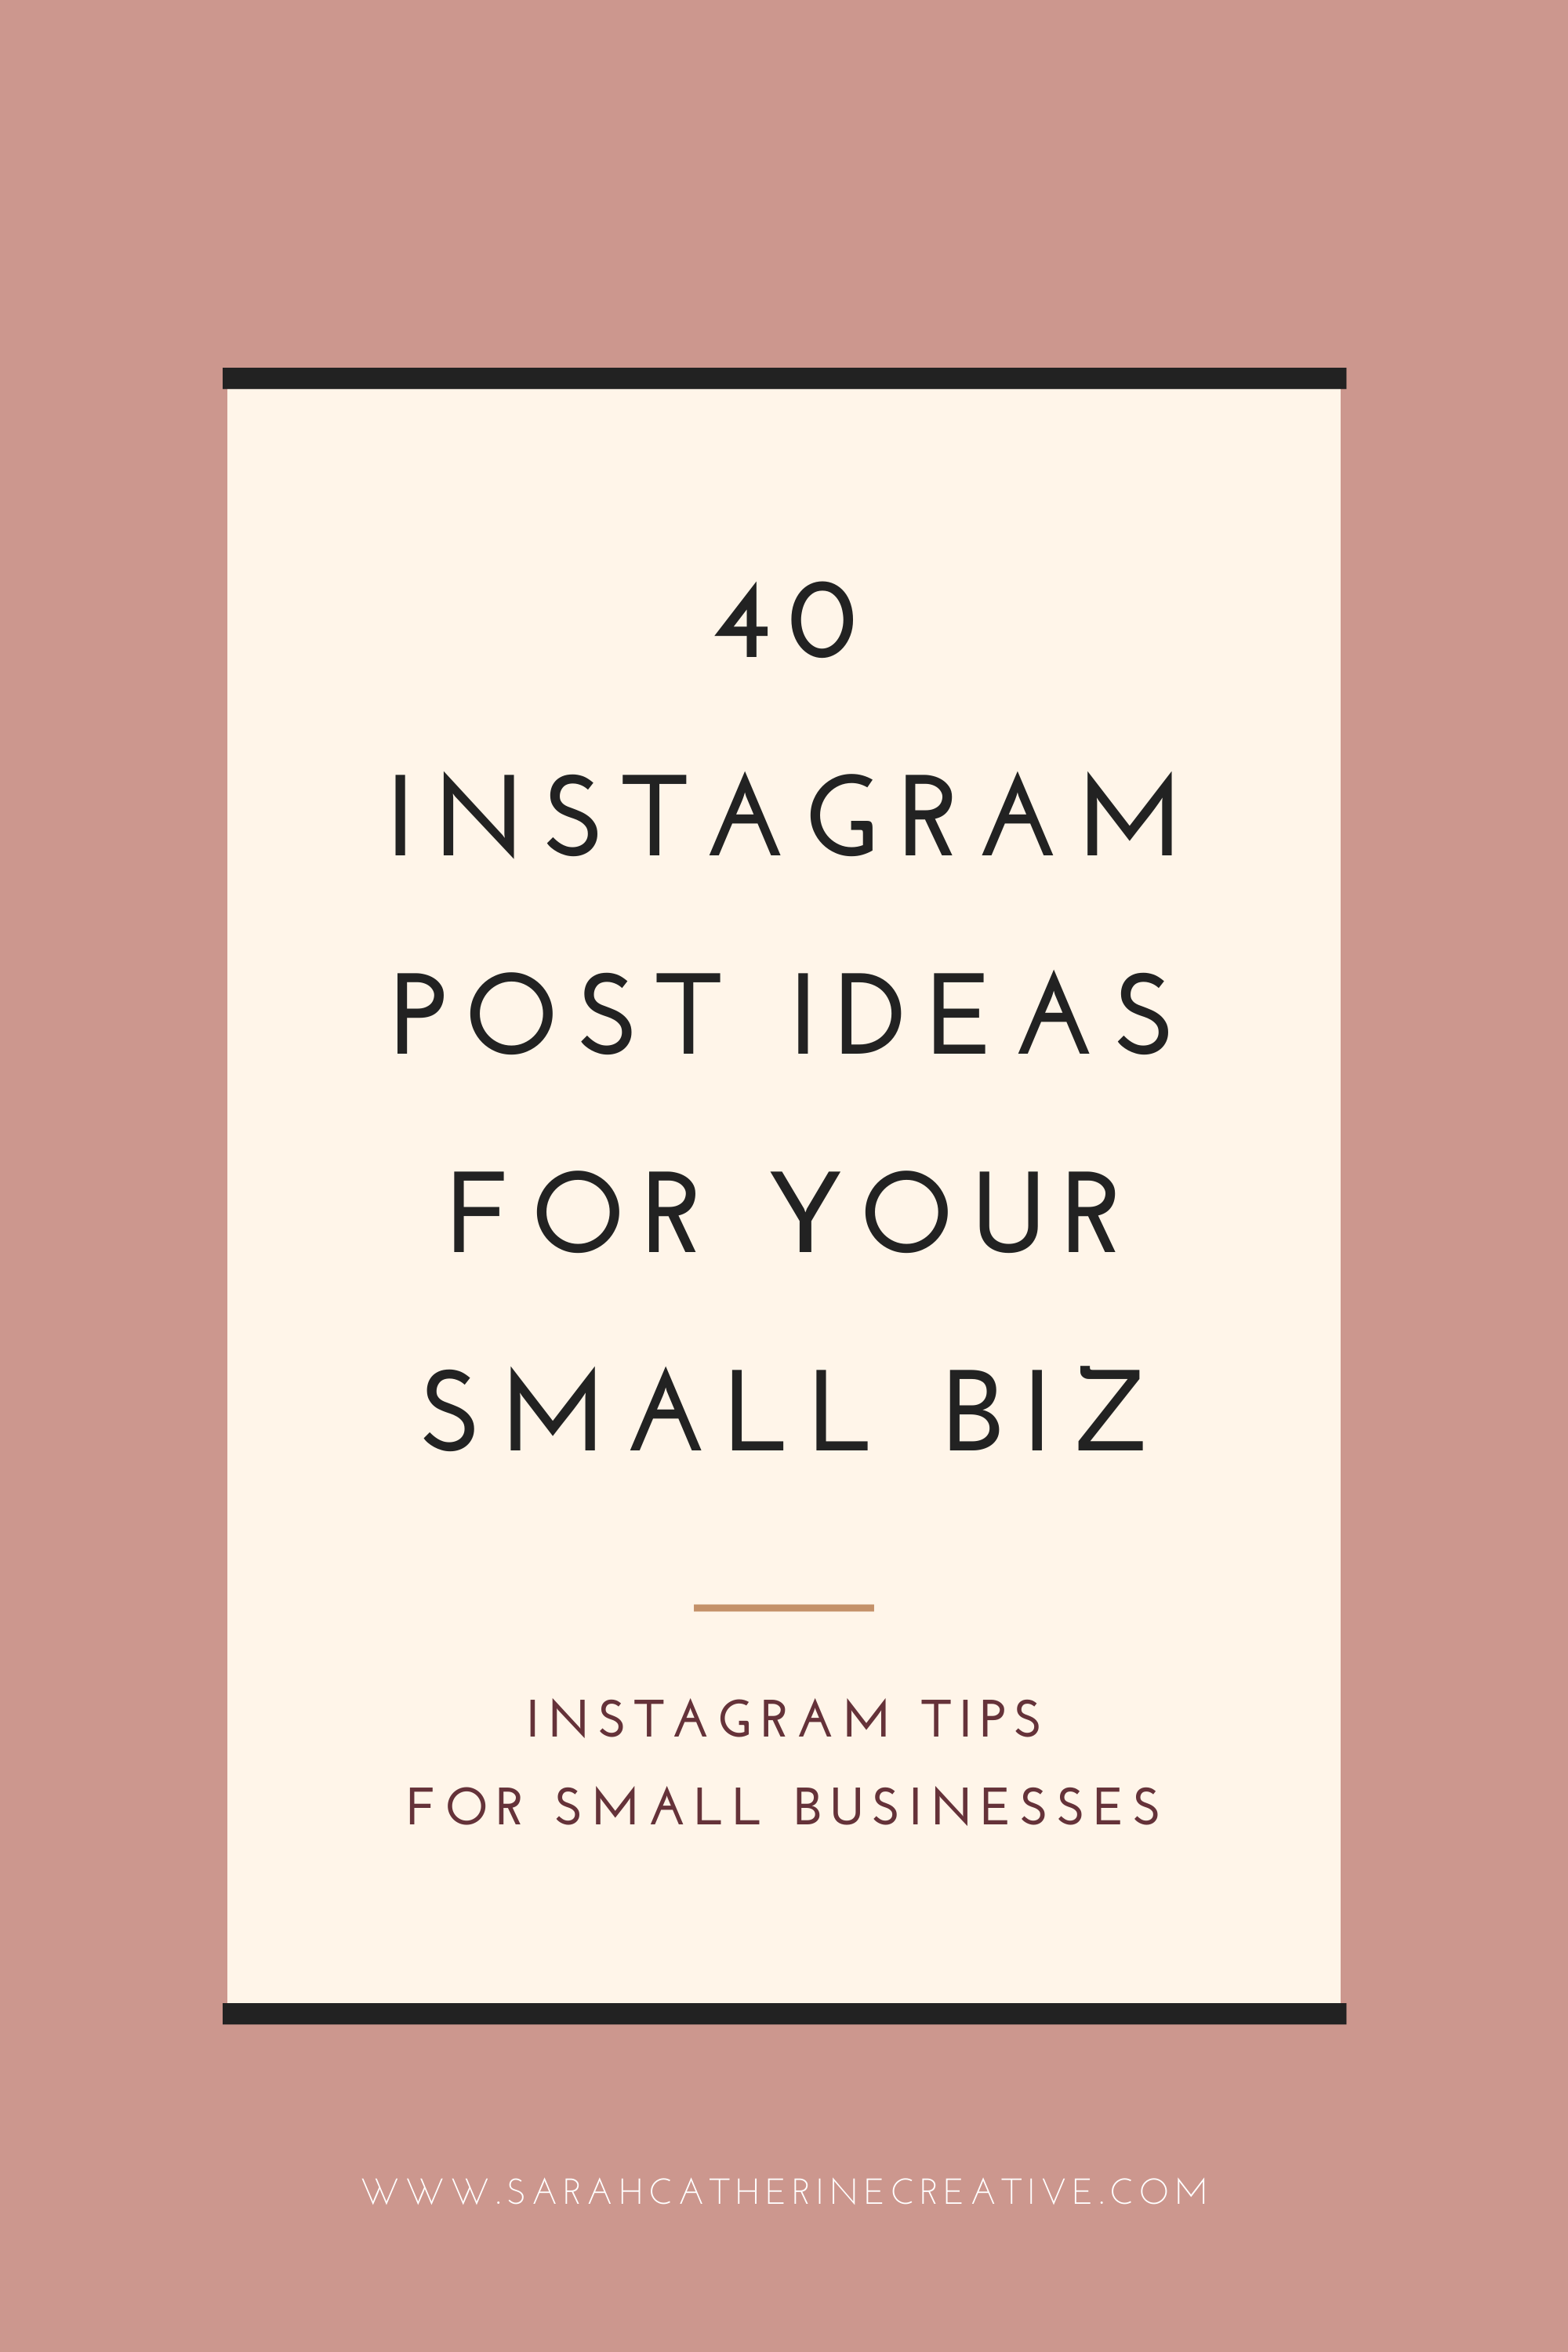 40 Instagram Post Ideas For Small Businesses Sarah Catherine Creative In 2020 Small Business Instagram Instagram Promotion Instagram Marketing Strategy